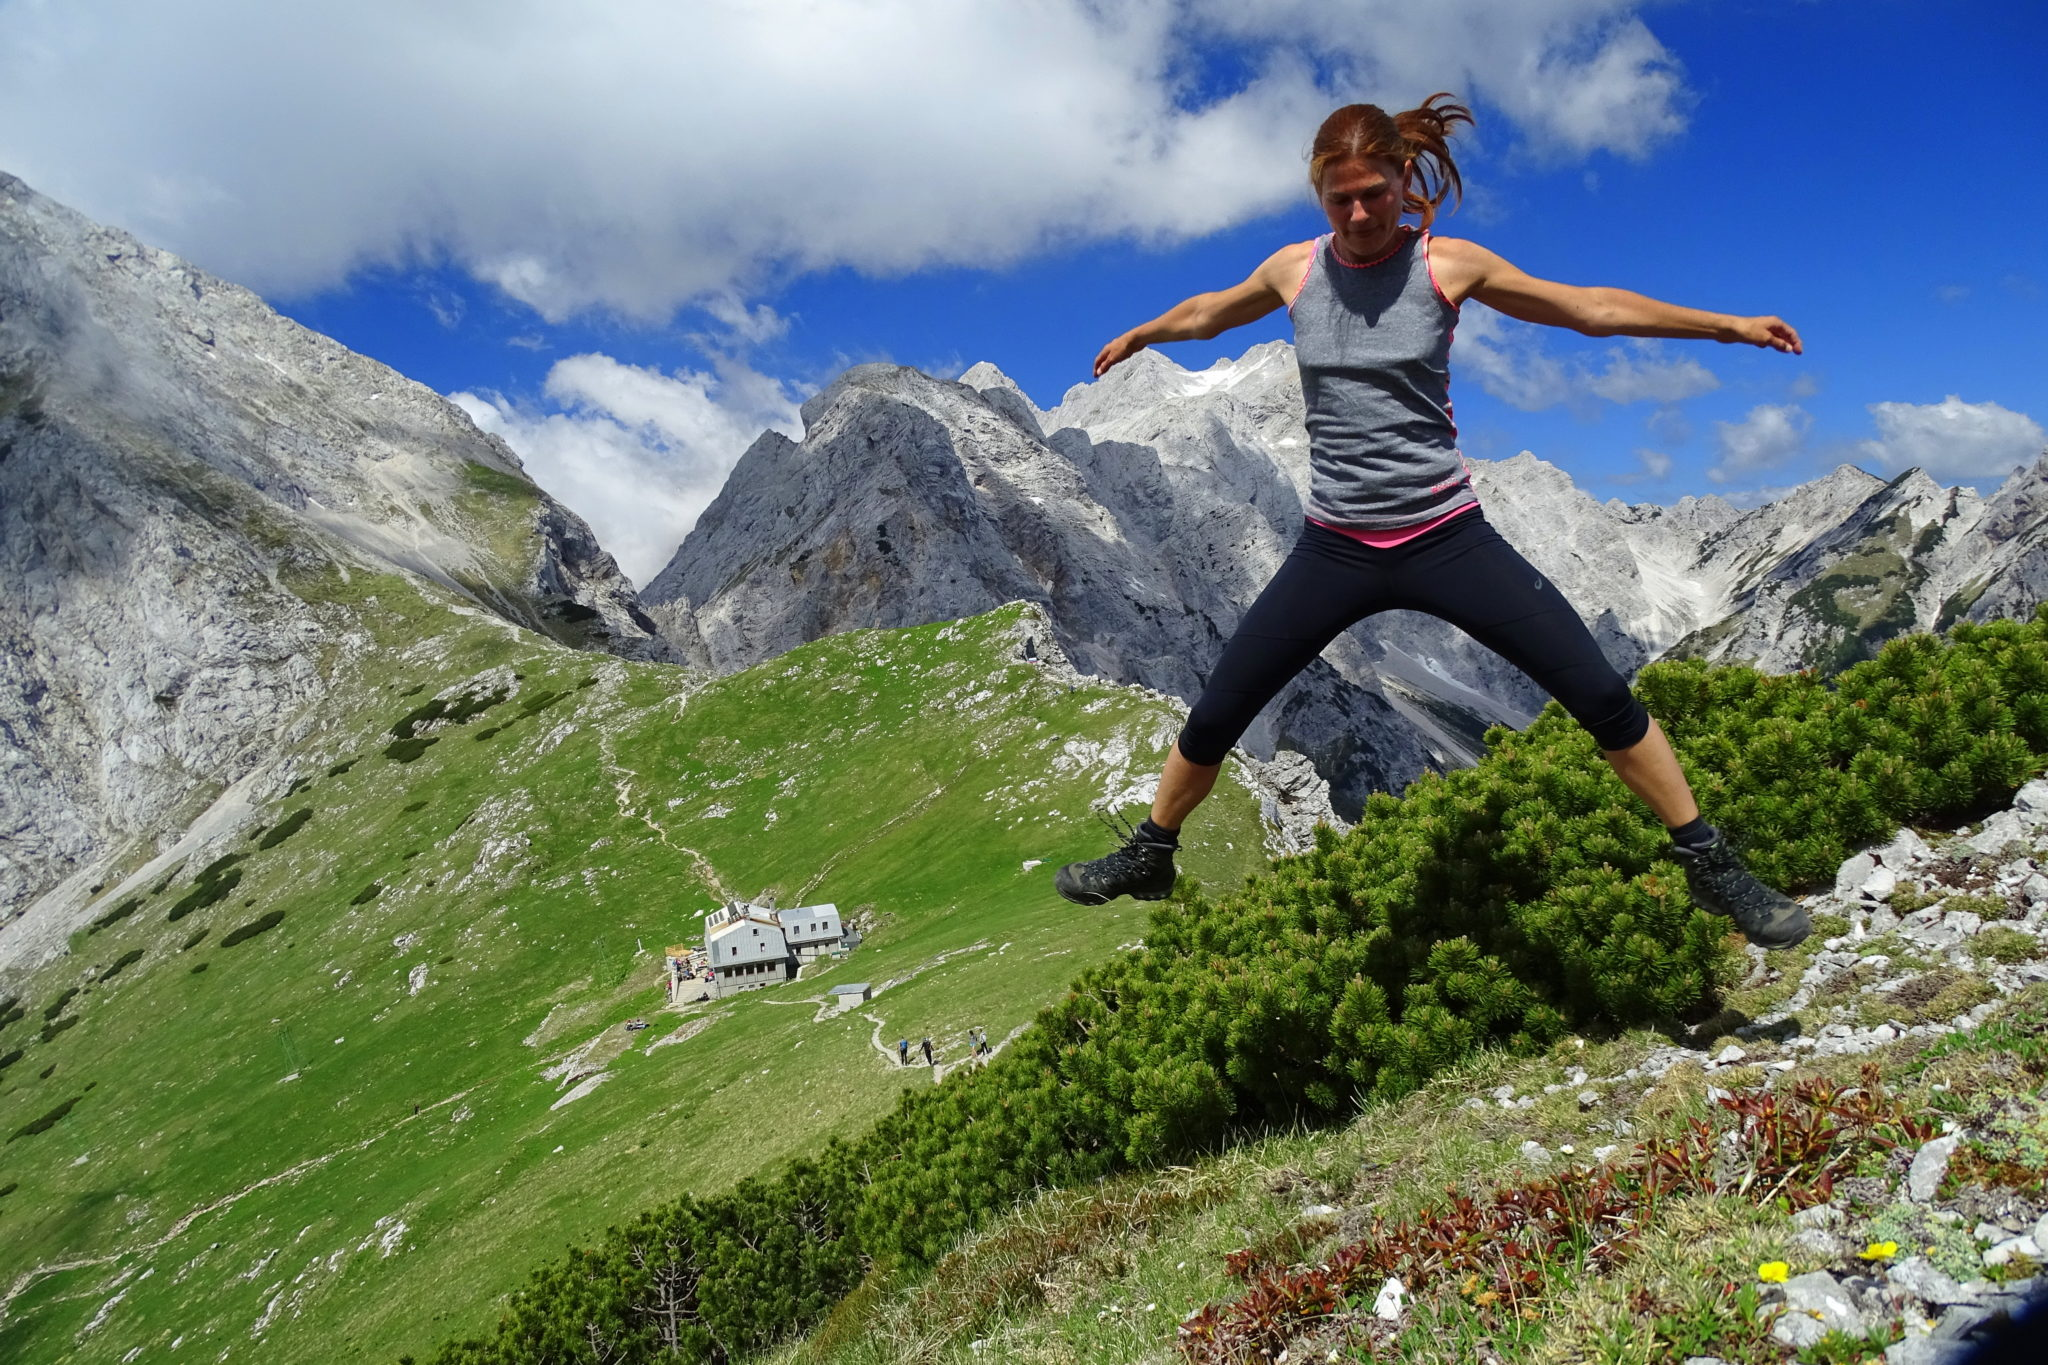 A woman hiker jumping with joy on an Alpine meadow